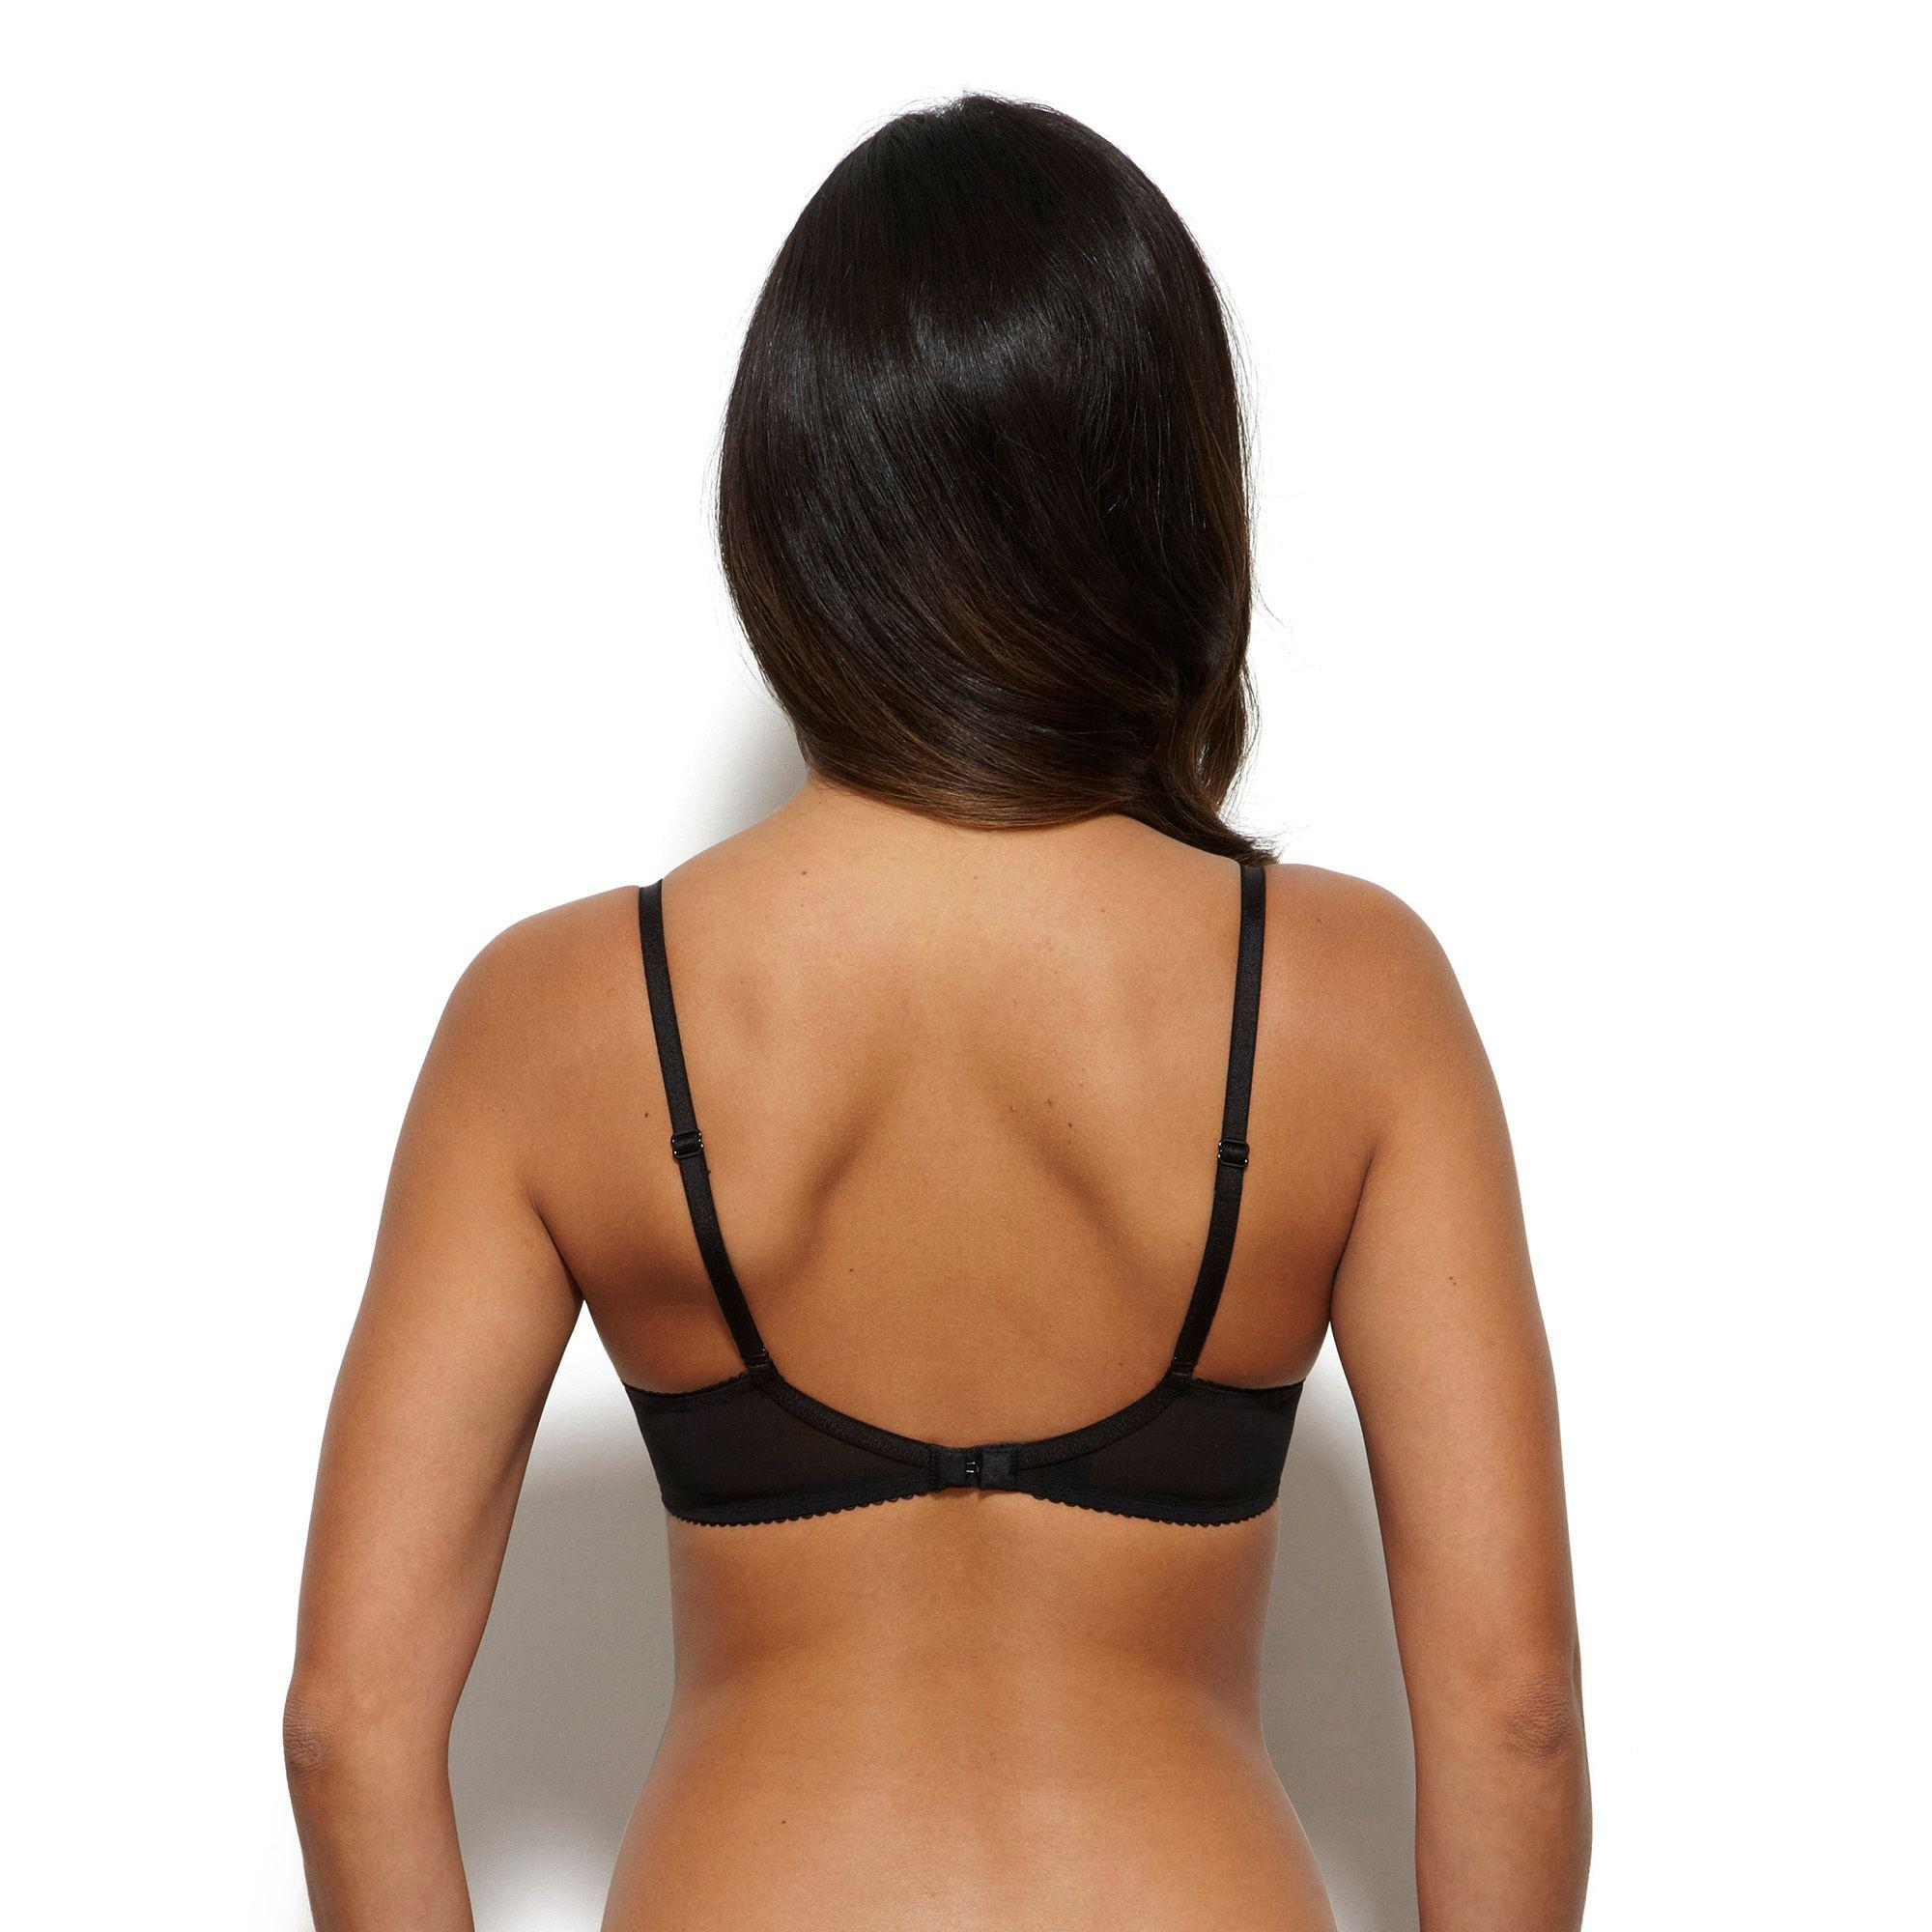 865b3a4db7d1d Gossard - Black  superboost  Lace Underwired Push Up Plunge Bra - Lyst.  View fullscreen